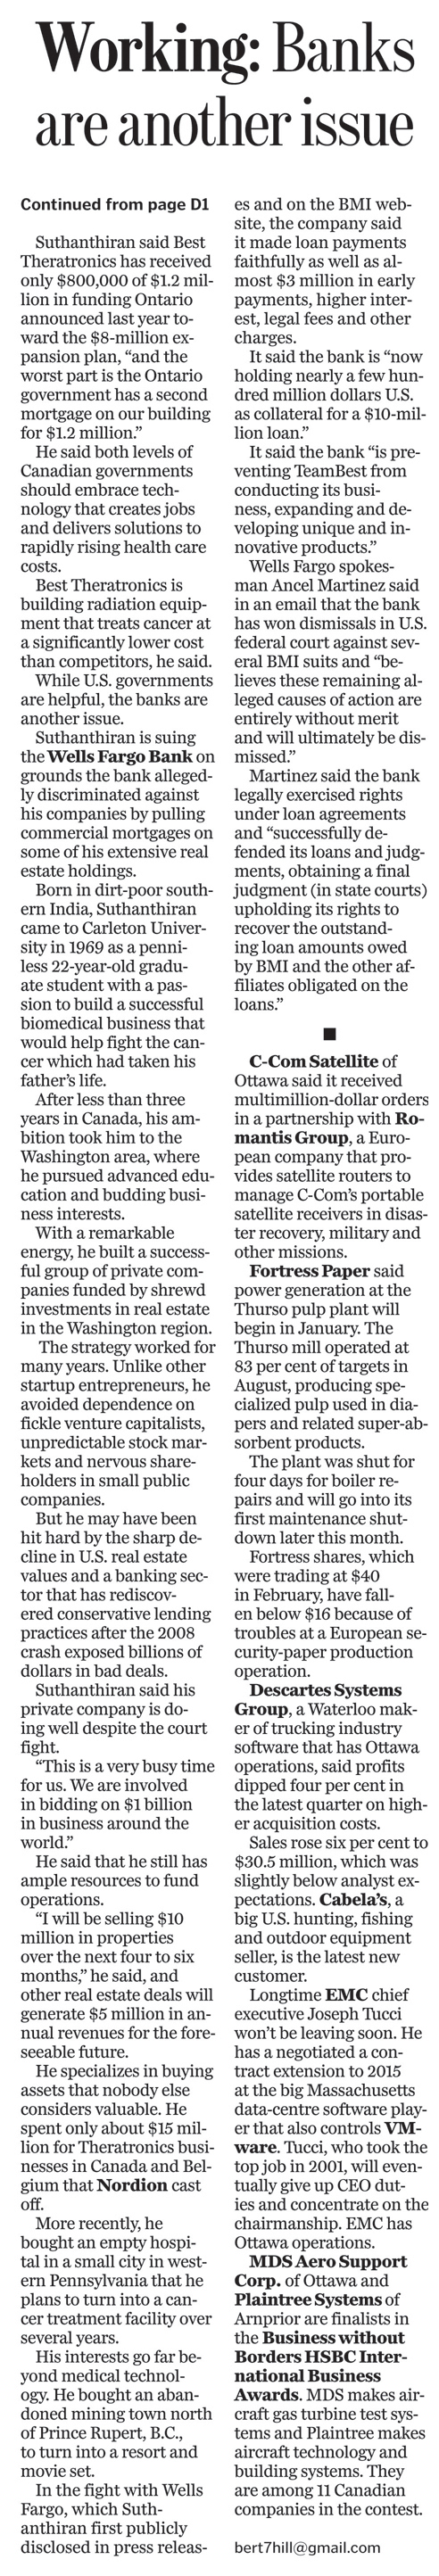 Ottawa Citizen Article